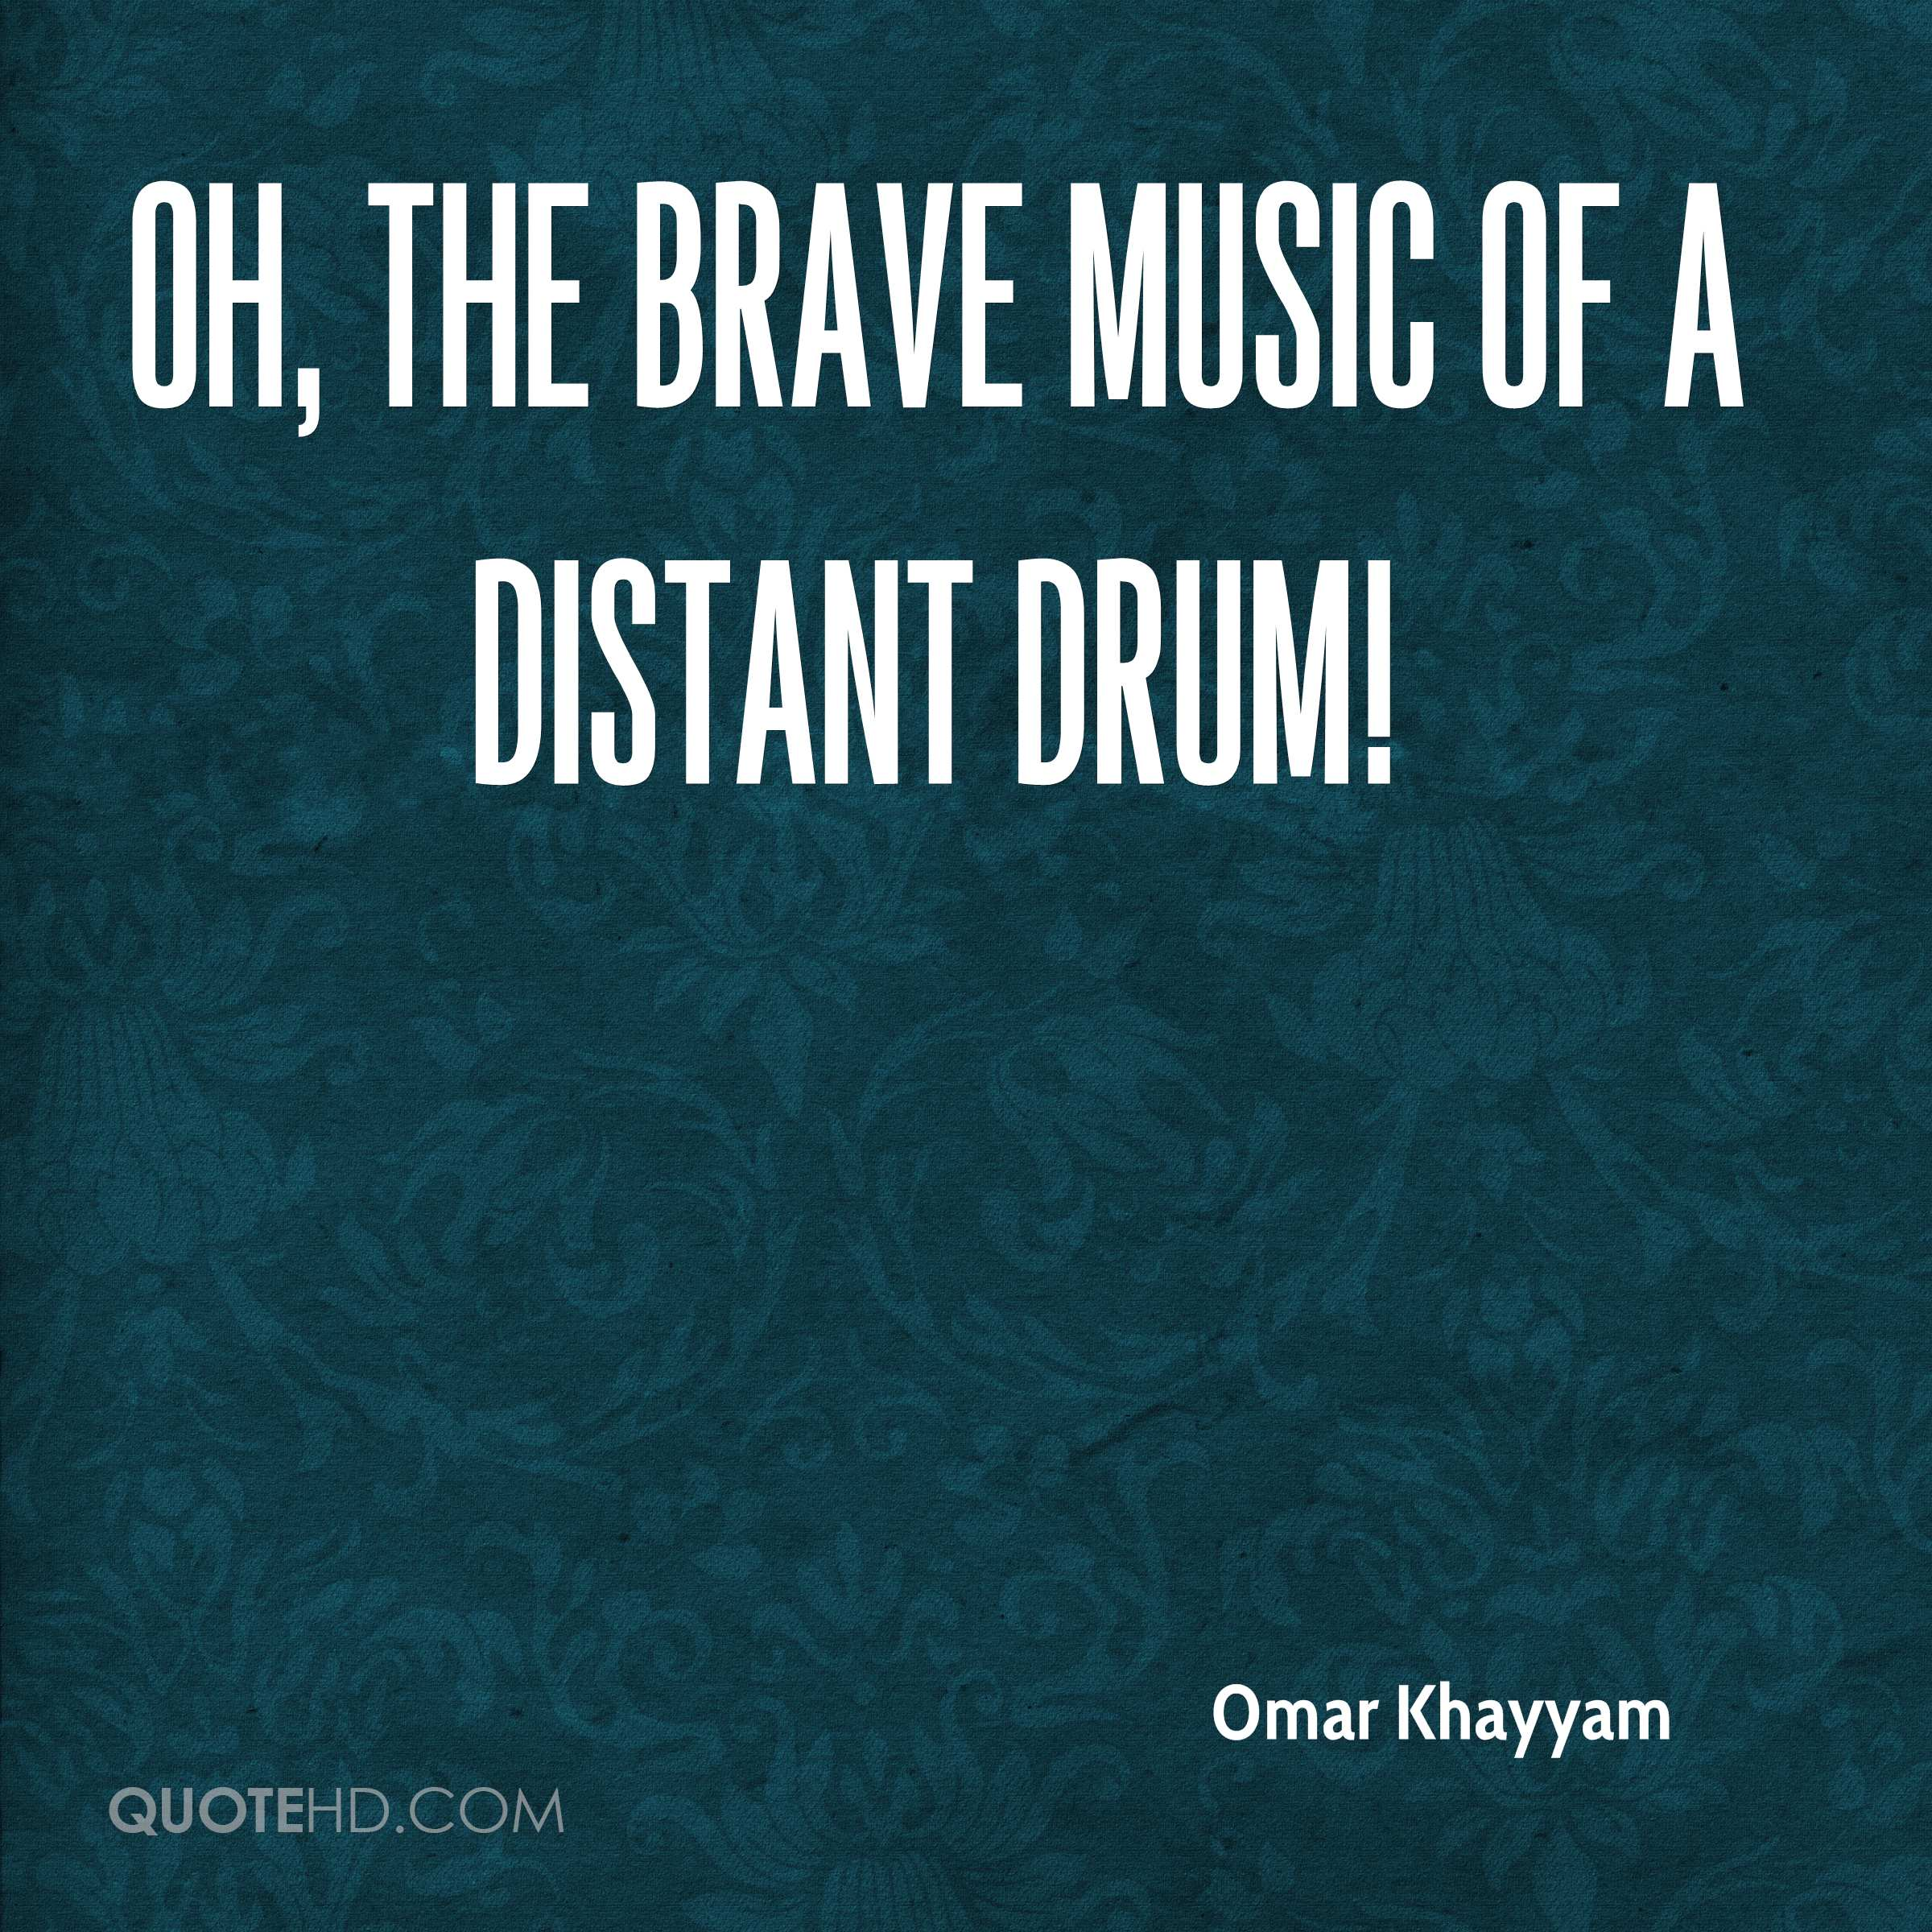 Oh, the brave music of a distant drum!